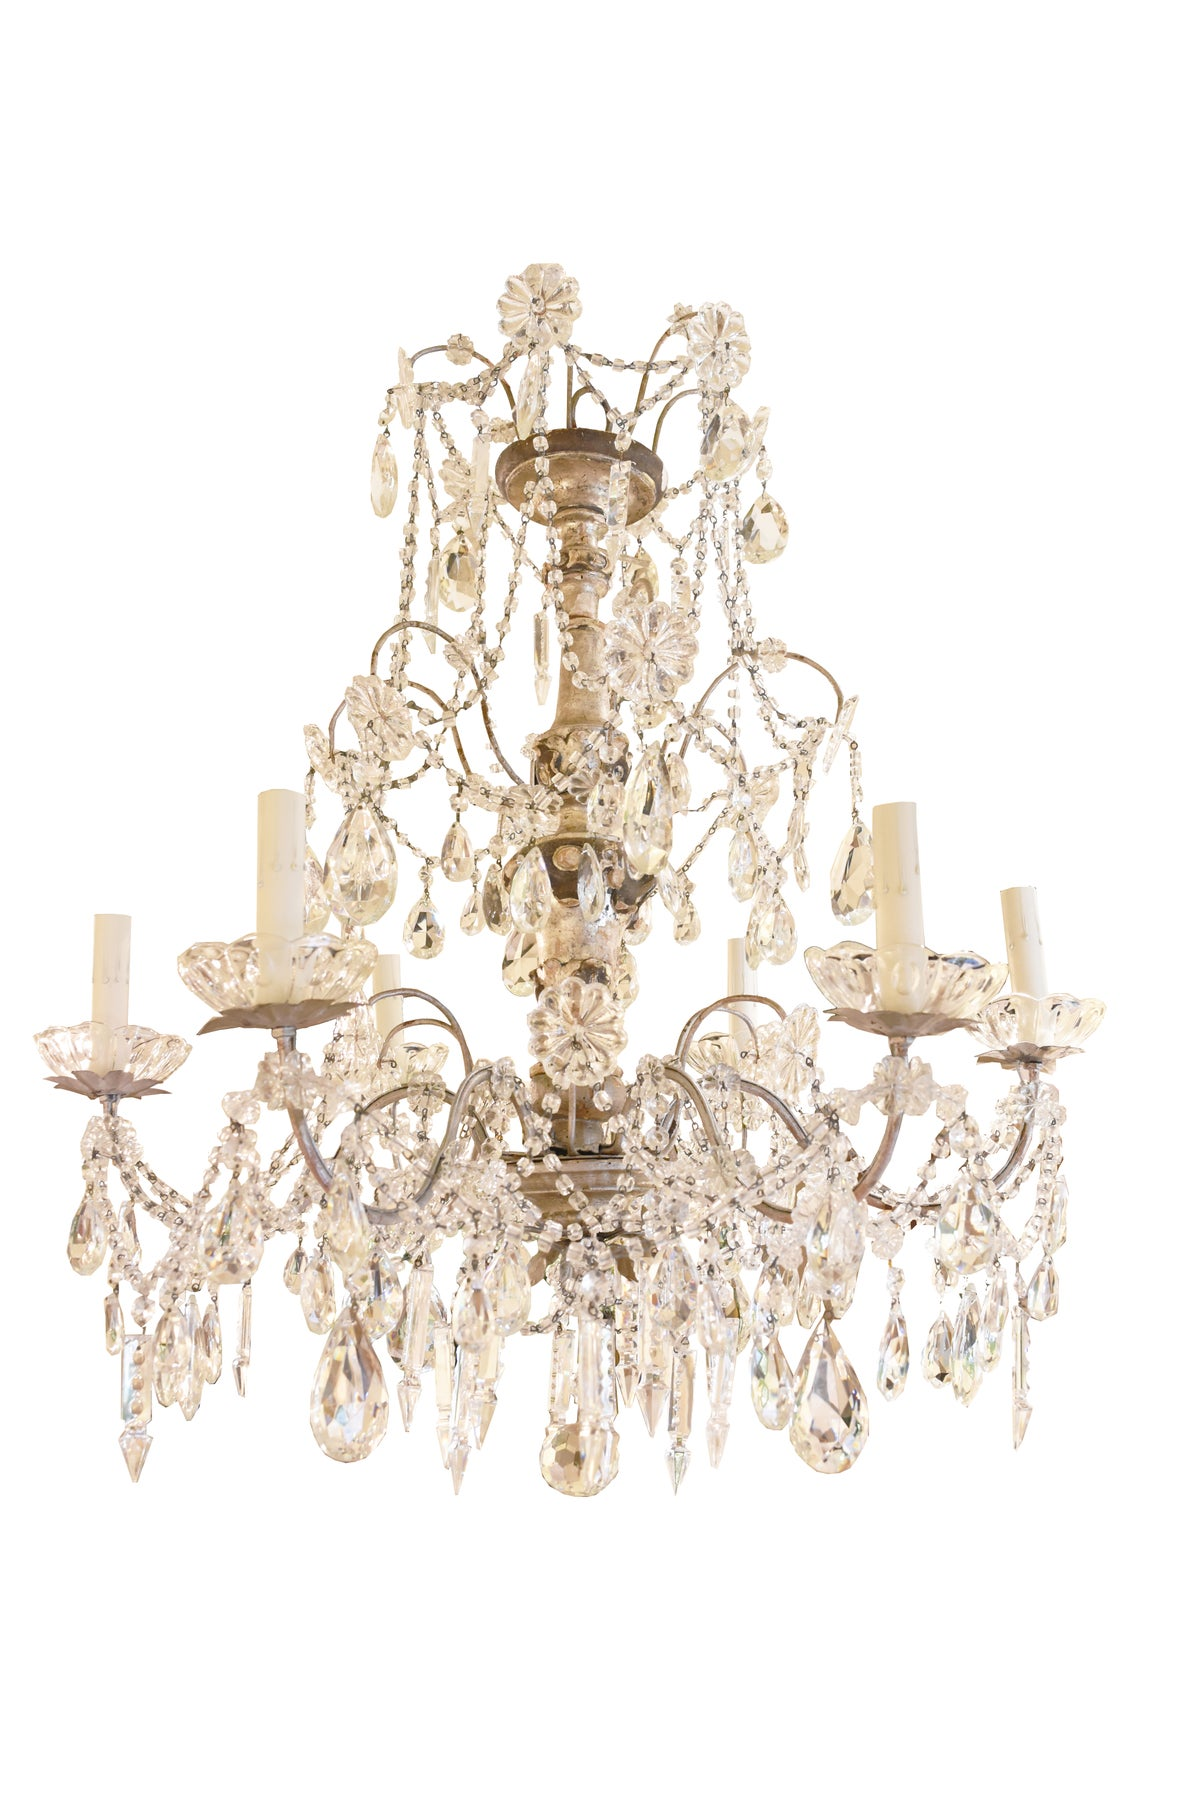 Image of 19th Century Italian Silvered Genovese Chandelier